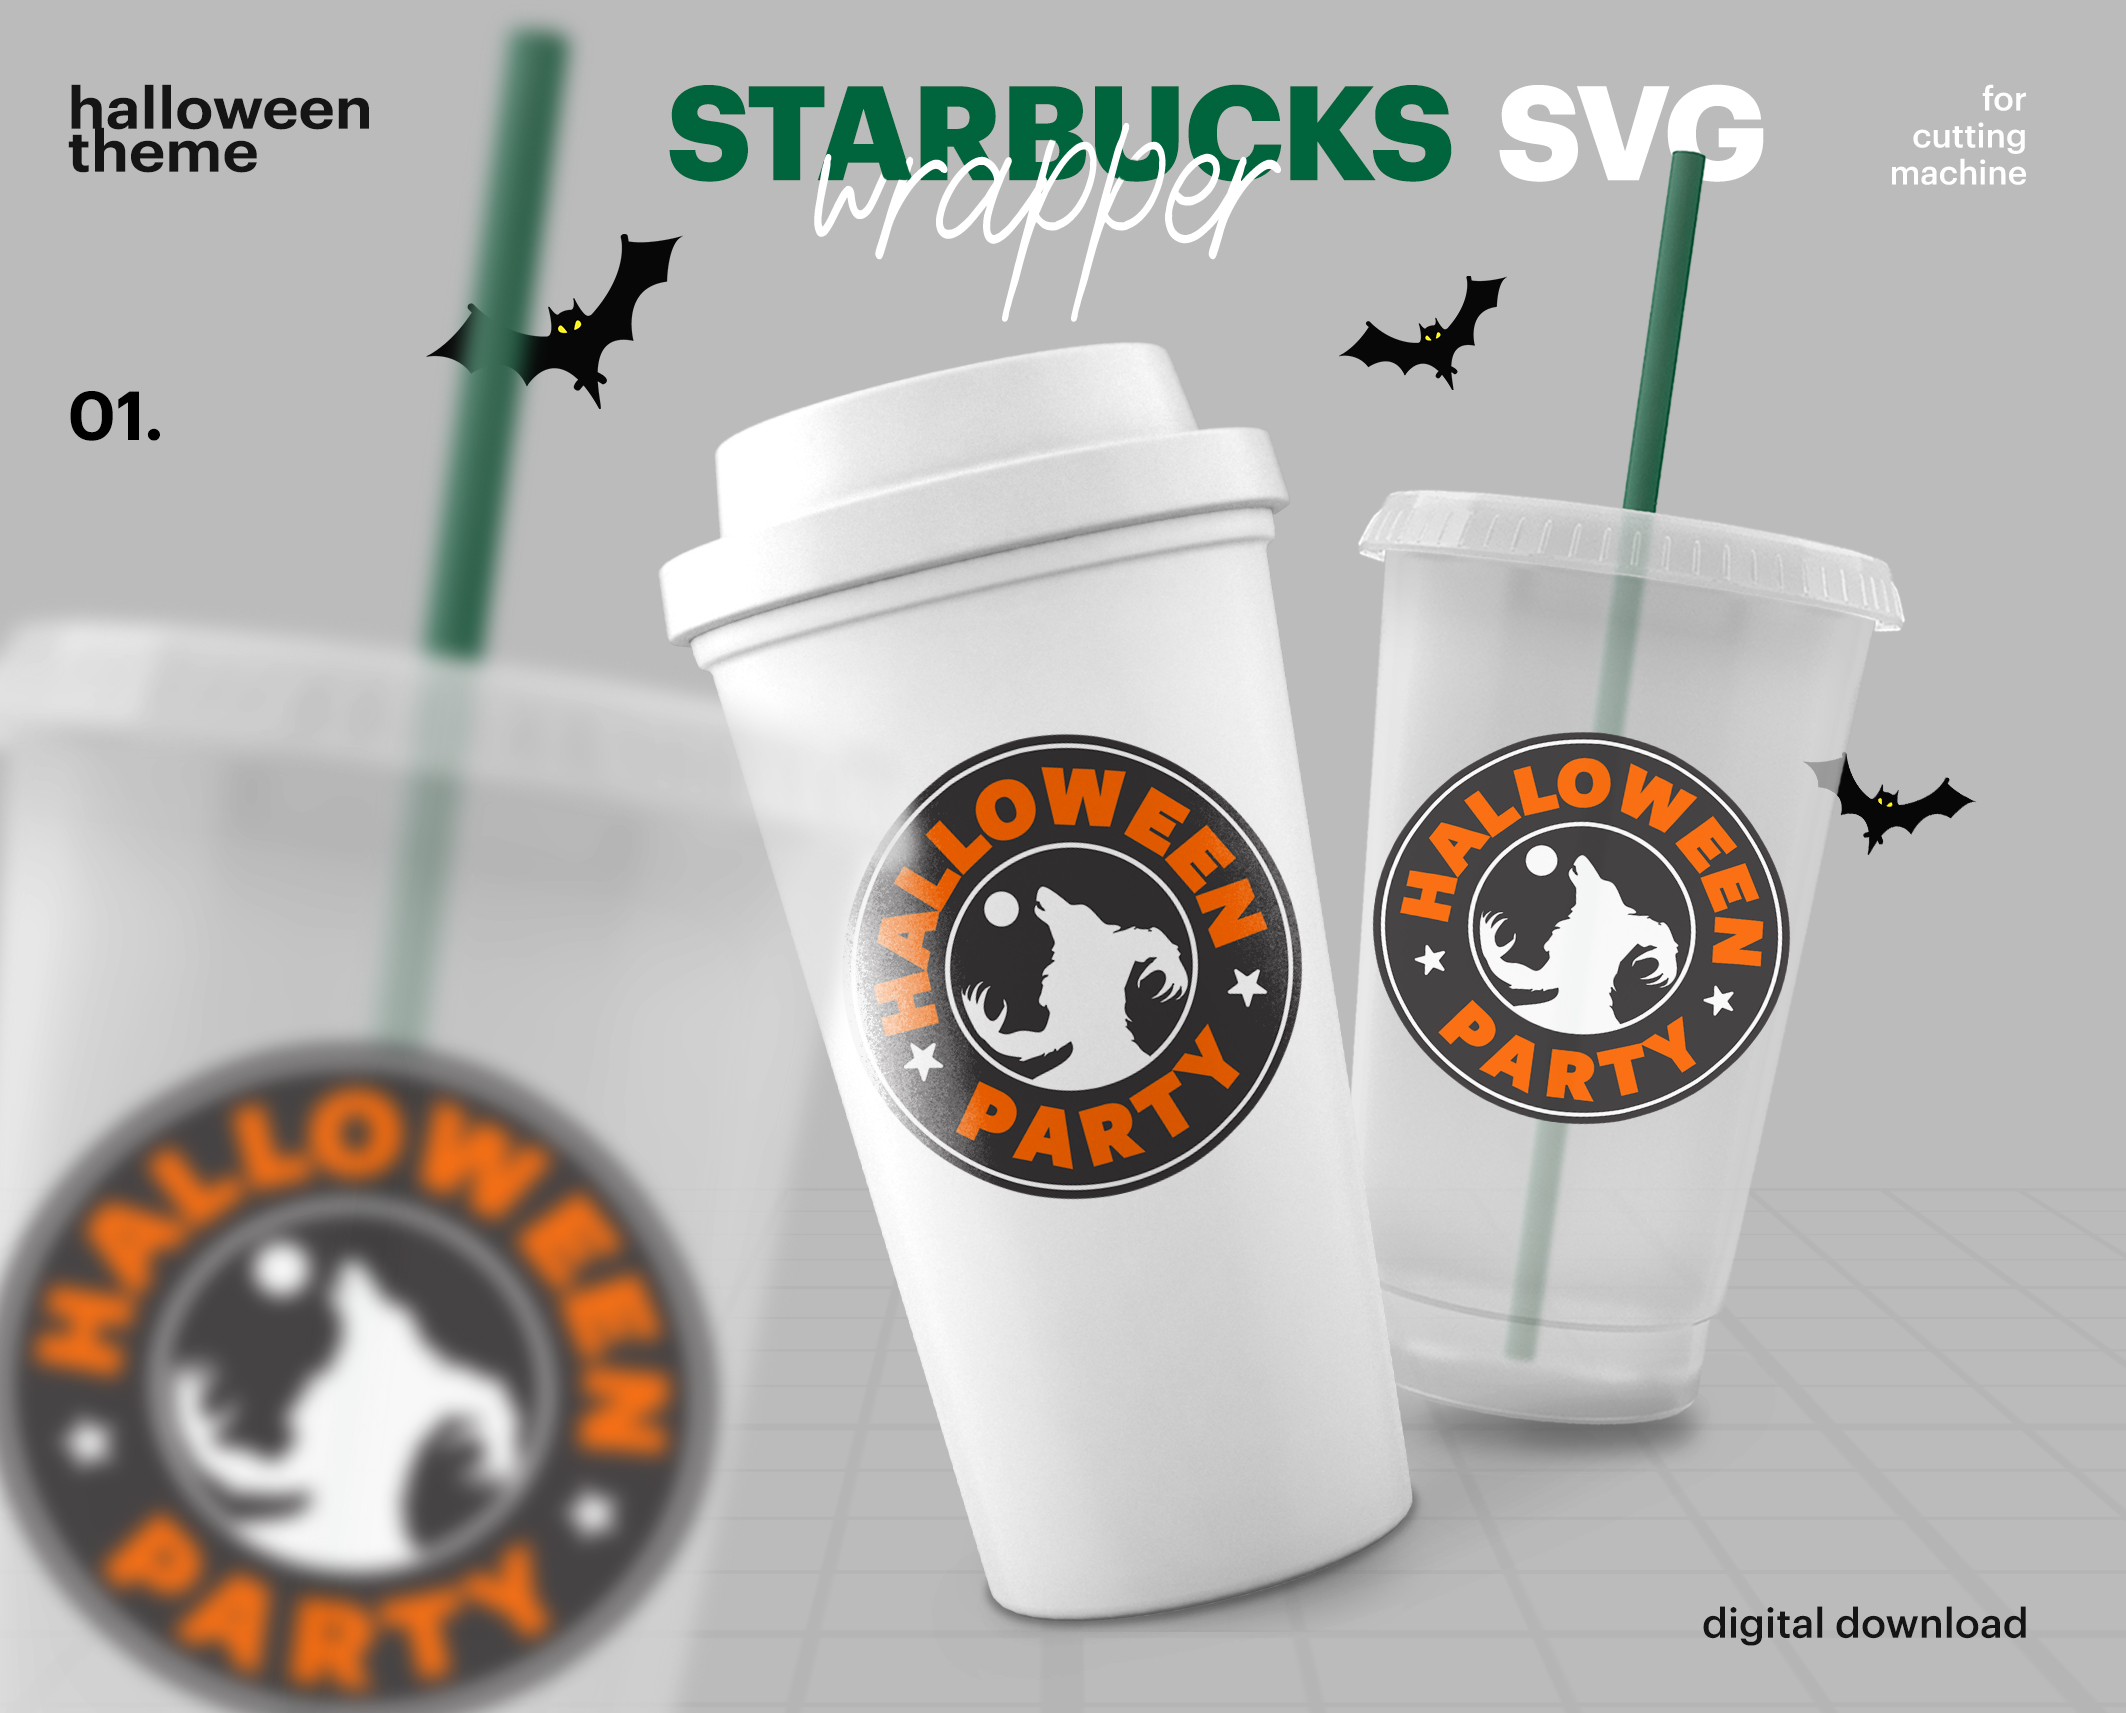 Starbucks Svg Logo And Wrap Starbucks Halloween Svg Reusable Starbucks Cup Svg Starbucks Venti Cup Starbucks Grande Cup Svg Png Cut File Buy T Shirt Designs